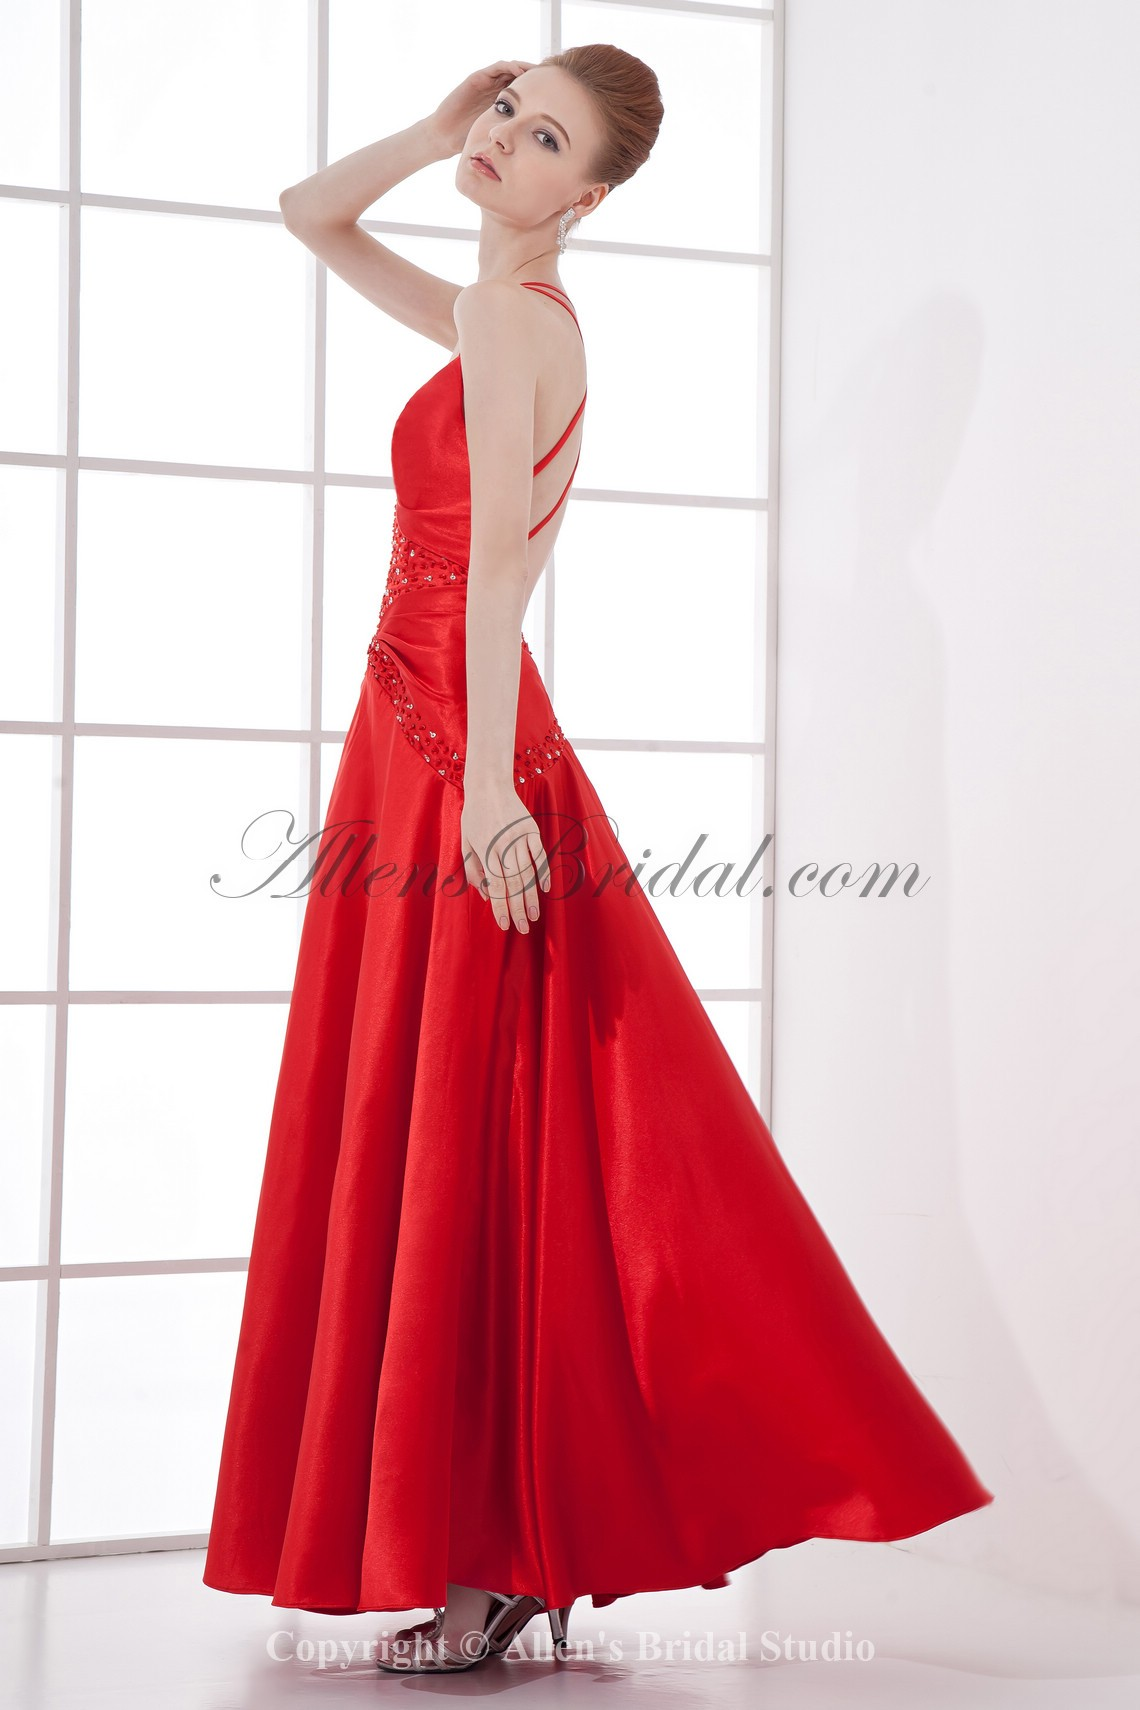 /72-570/satin-spaghetti-neckline-a-line-ankle-length-sequins-prom-dress.jpg